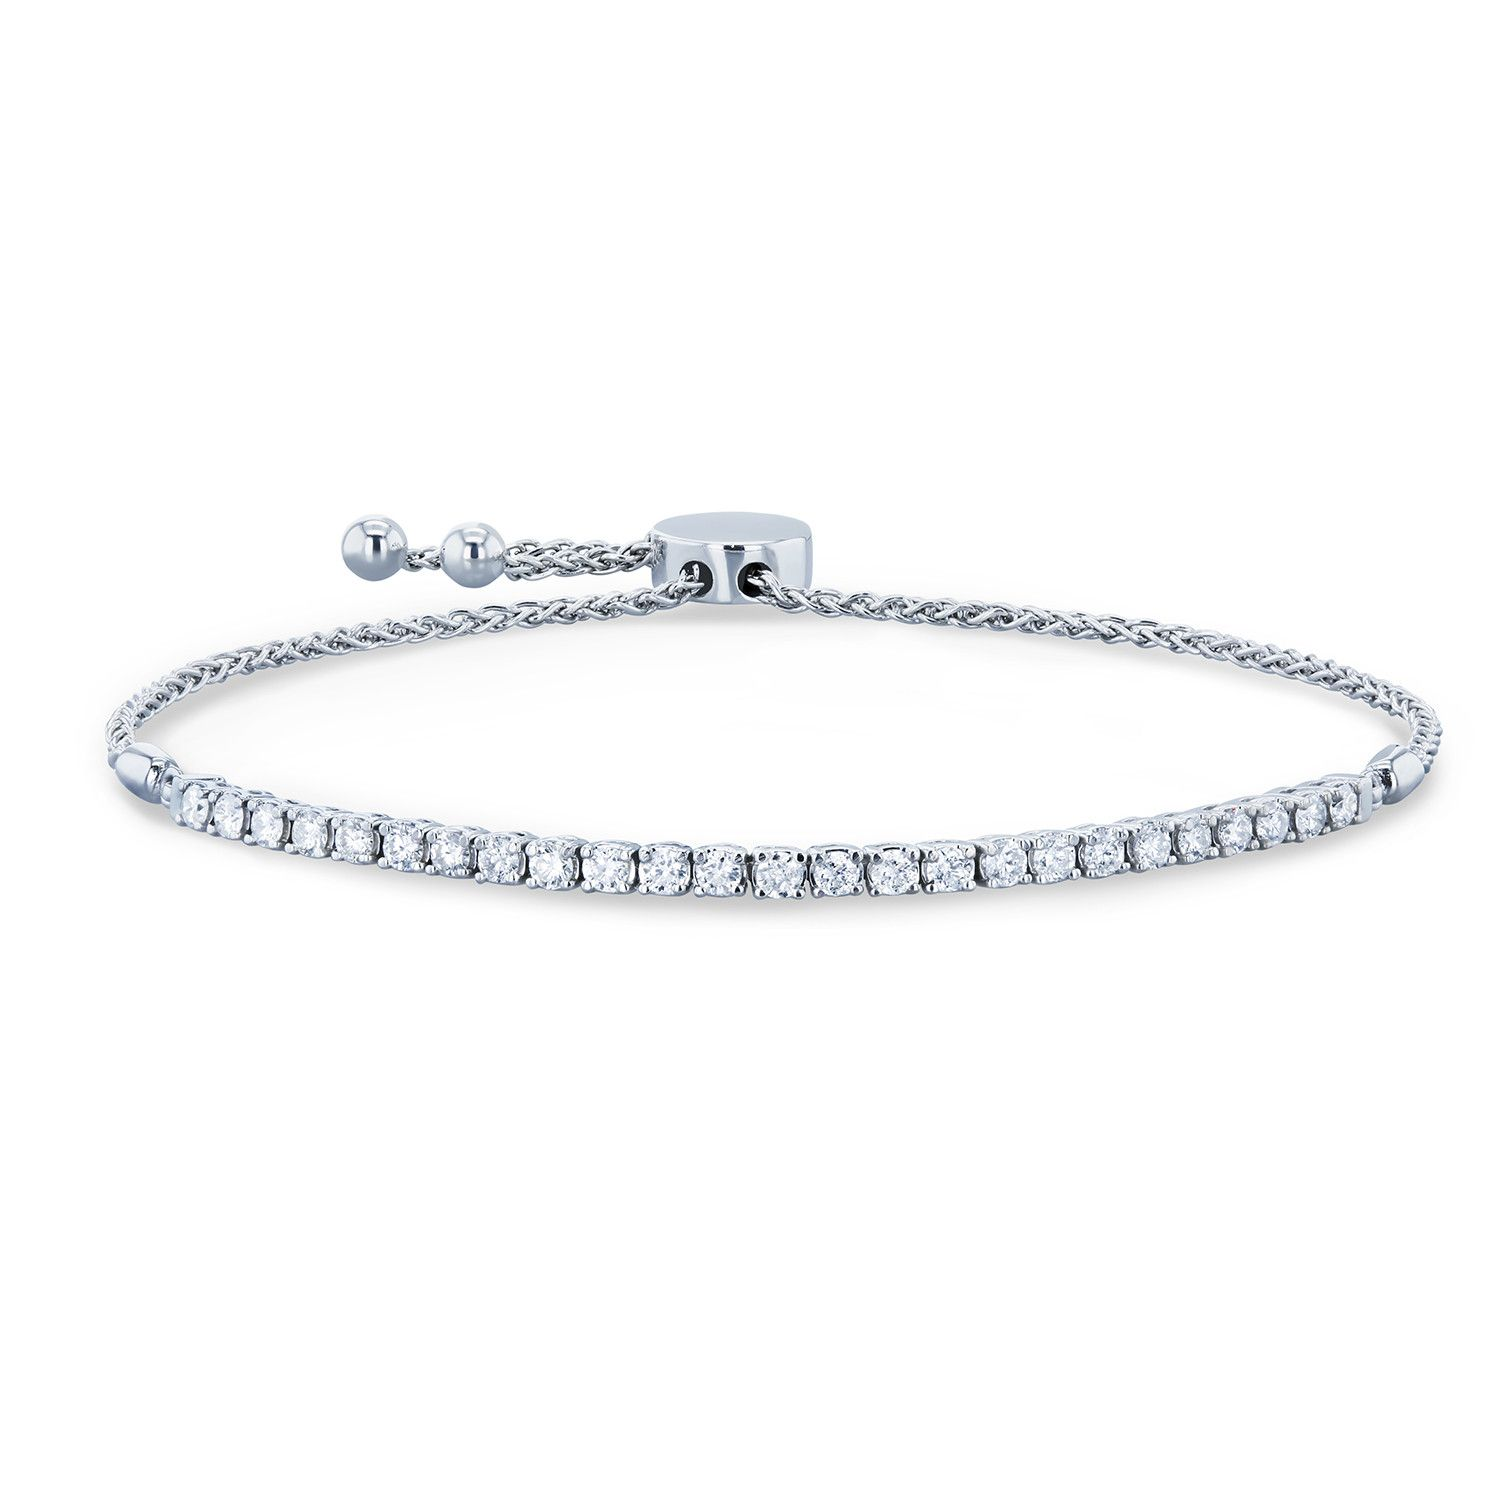 Diamond Bolo Strand Tennis Bracelet Diamond Bracelets Sparkly Jewelry